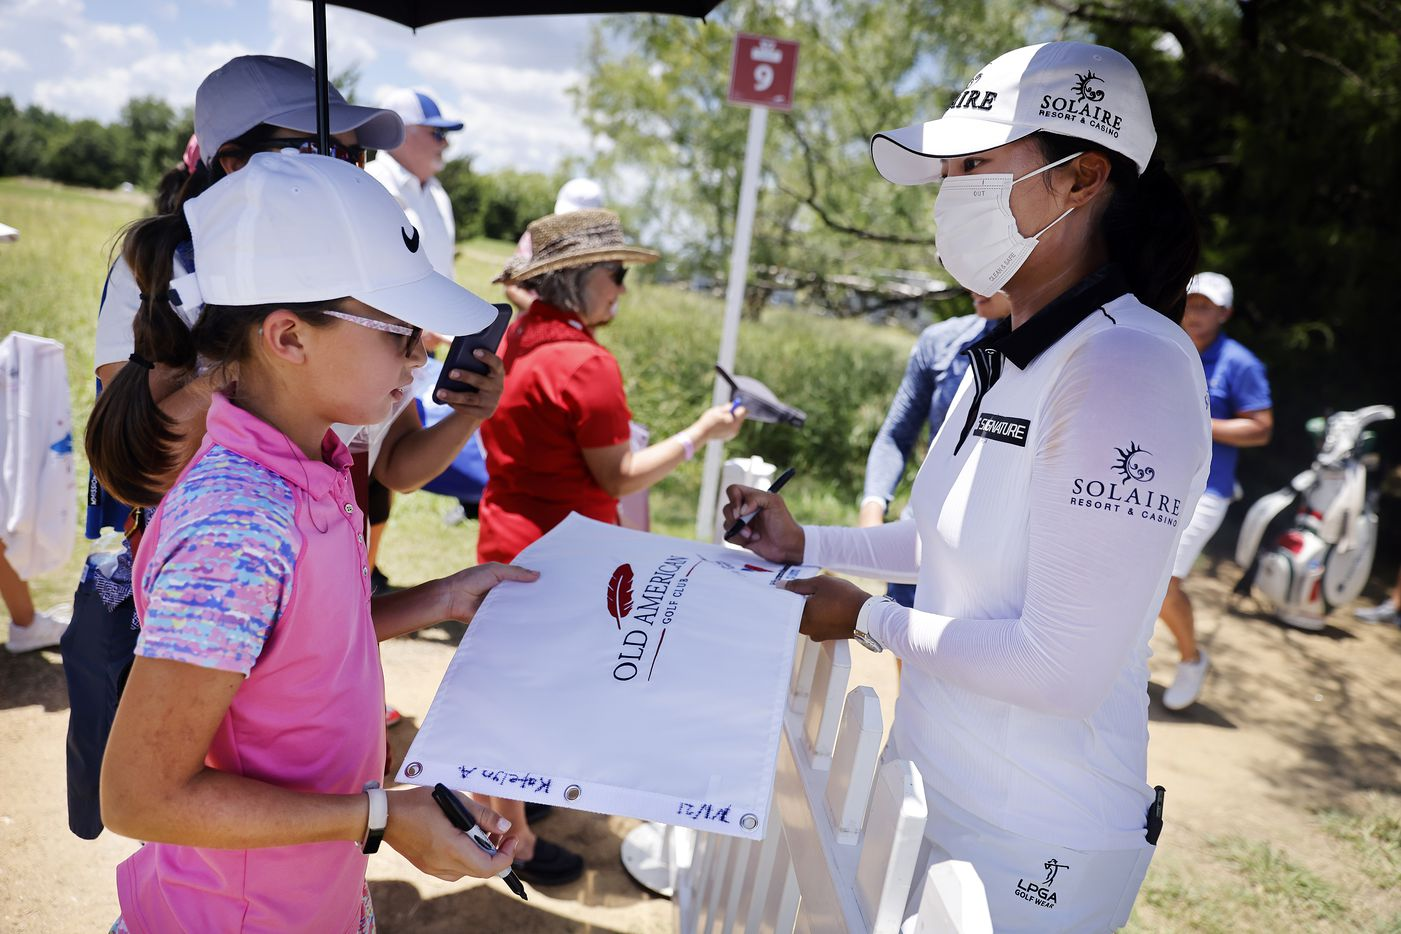 Professional golfer Jin Young Ko (right) signs a pin flag for Katelyn Allen of Montgomery, Texas after her opening round 8-under in the LPGA VOA Classic at the Old American Golf Club in The Colony, Texas, Thursday, July 1, 2021. (Tom Fox/The Dallas Morning News)